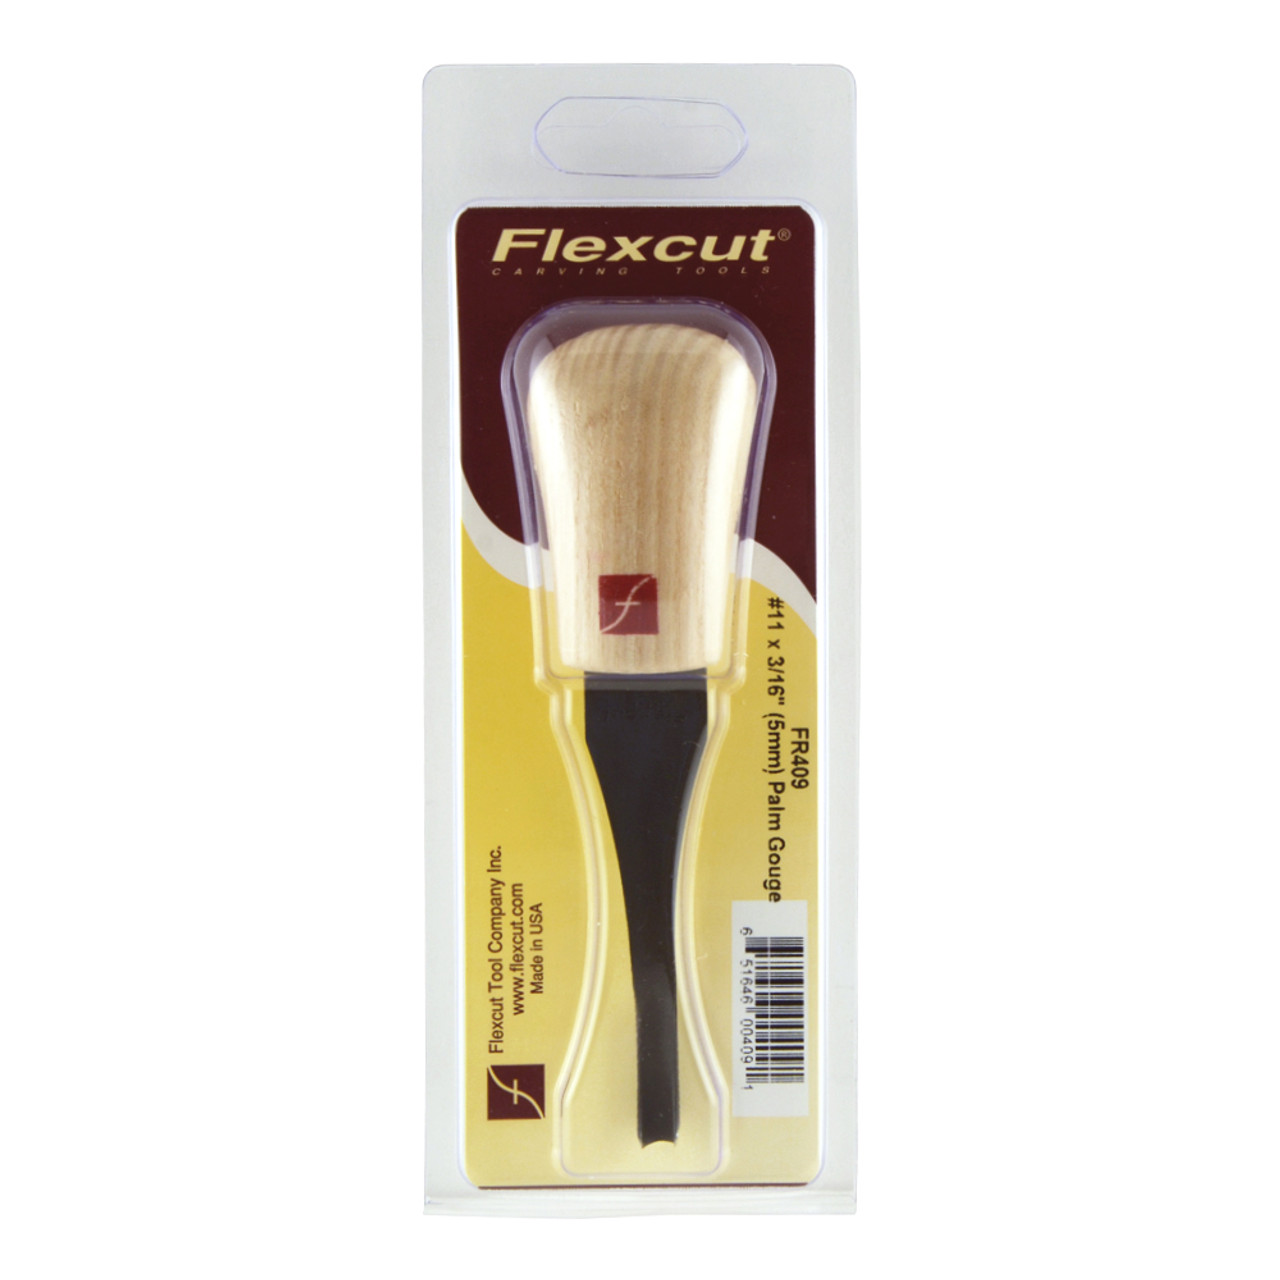 """Flexcut FR409 Palm Carving  #11 x 3/16"""" Gouge shown in the original package."""